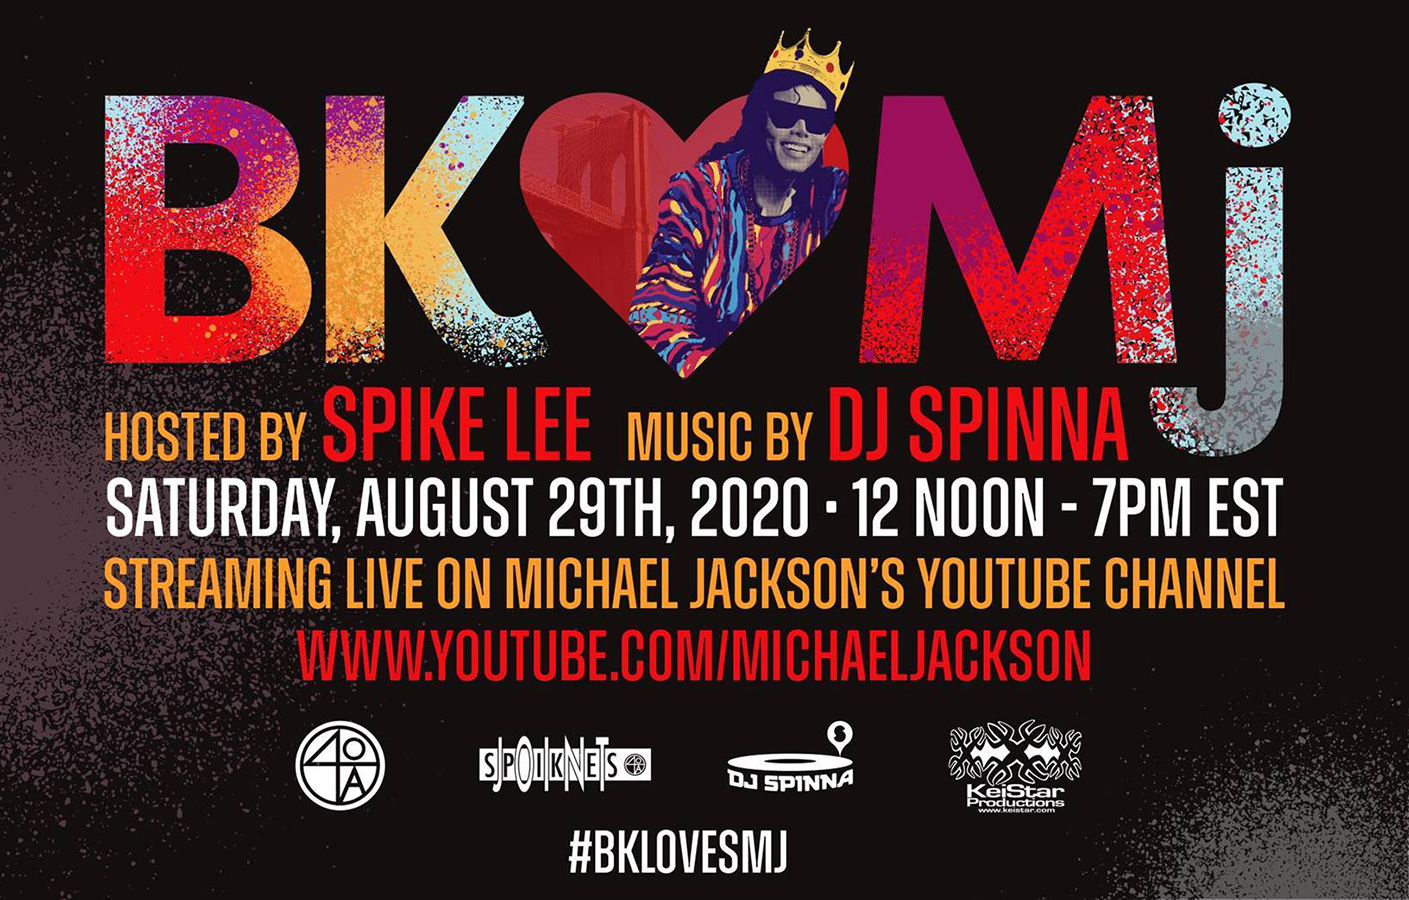 Don't Miss Spike Lee's Brooklyn ♥ MJ birthday stream